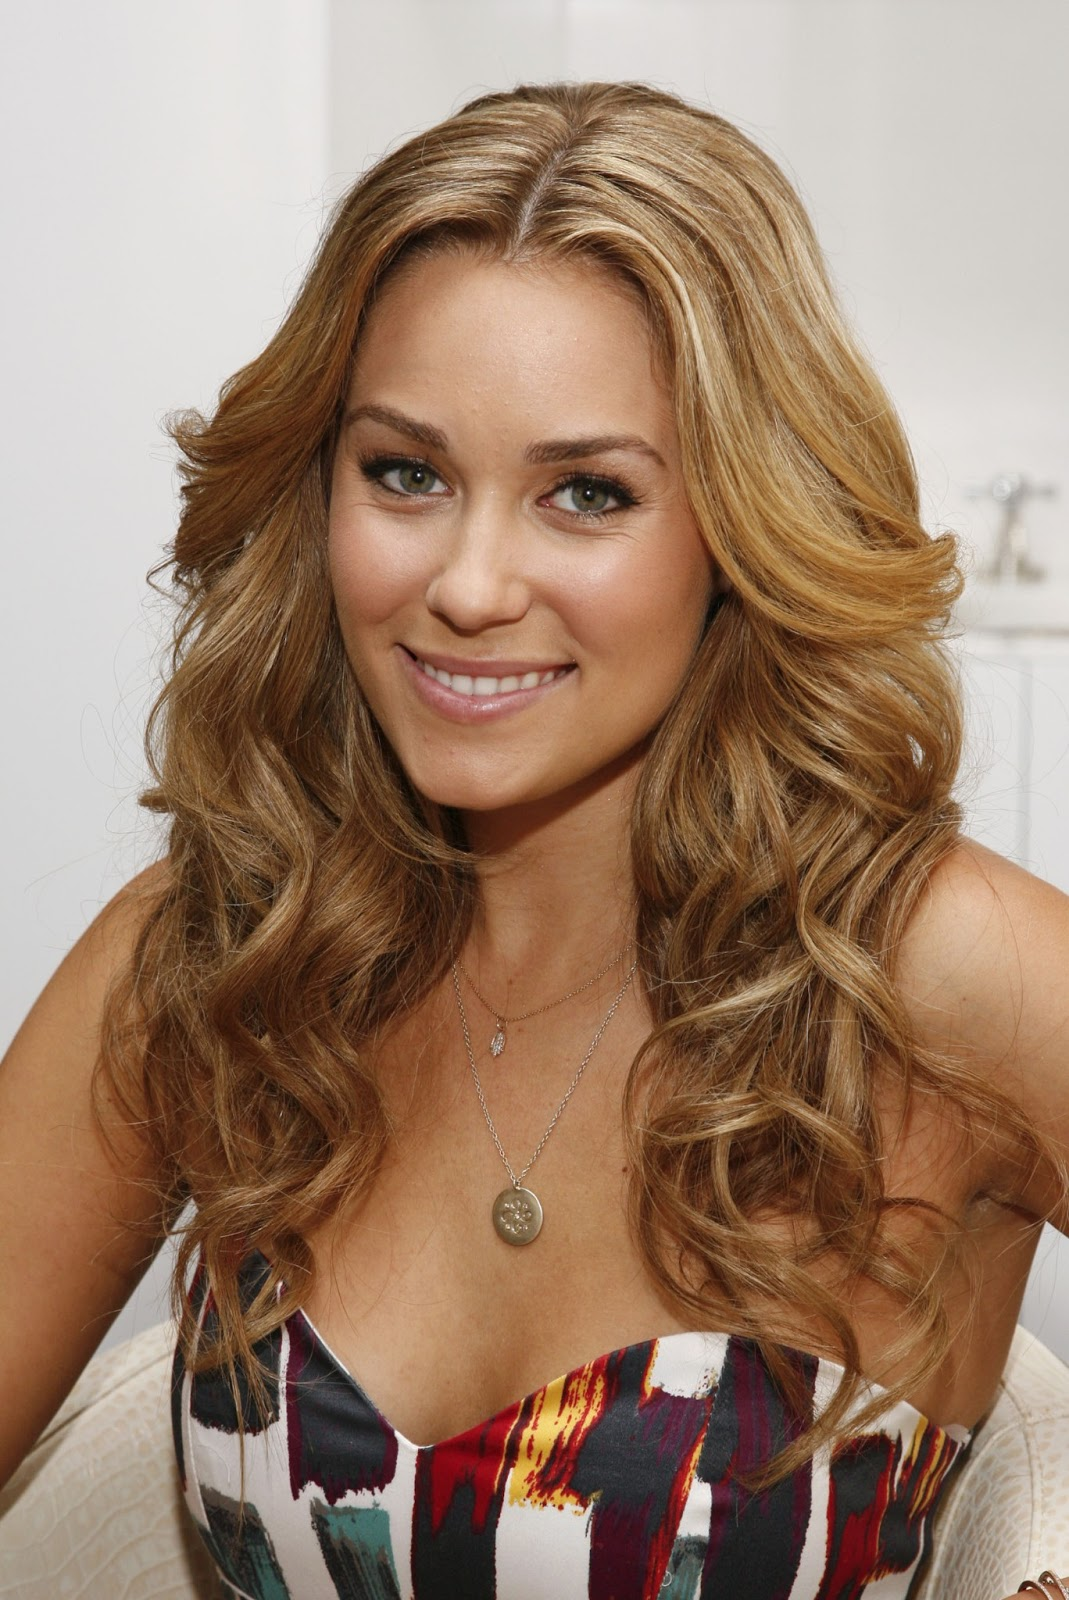 Lauren Conrad Hairstyle Ideas For Girls Review Hairstyles